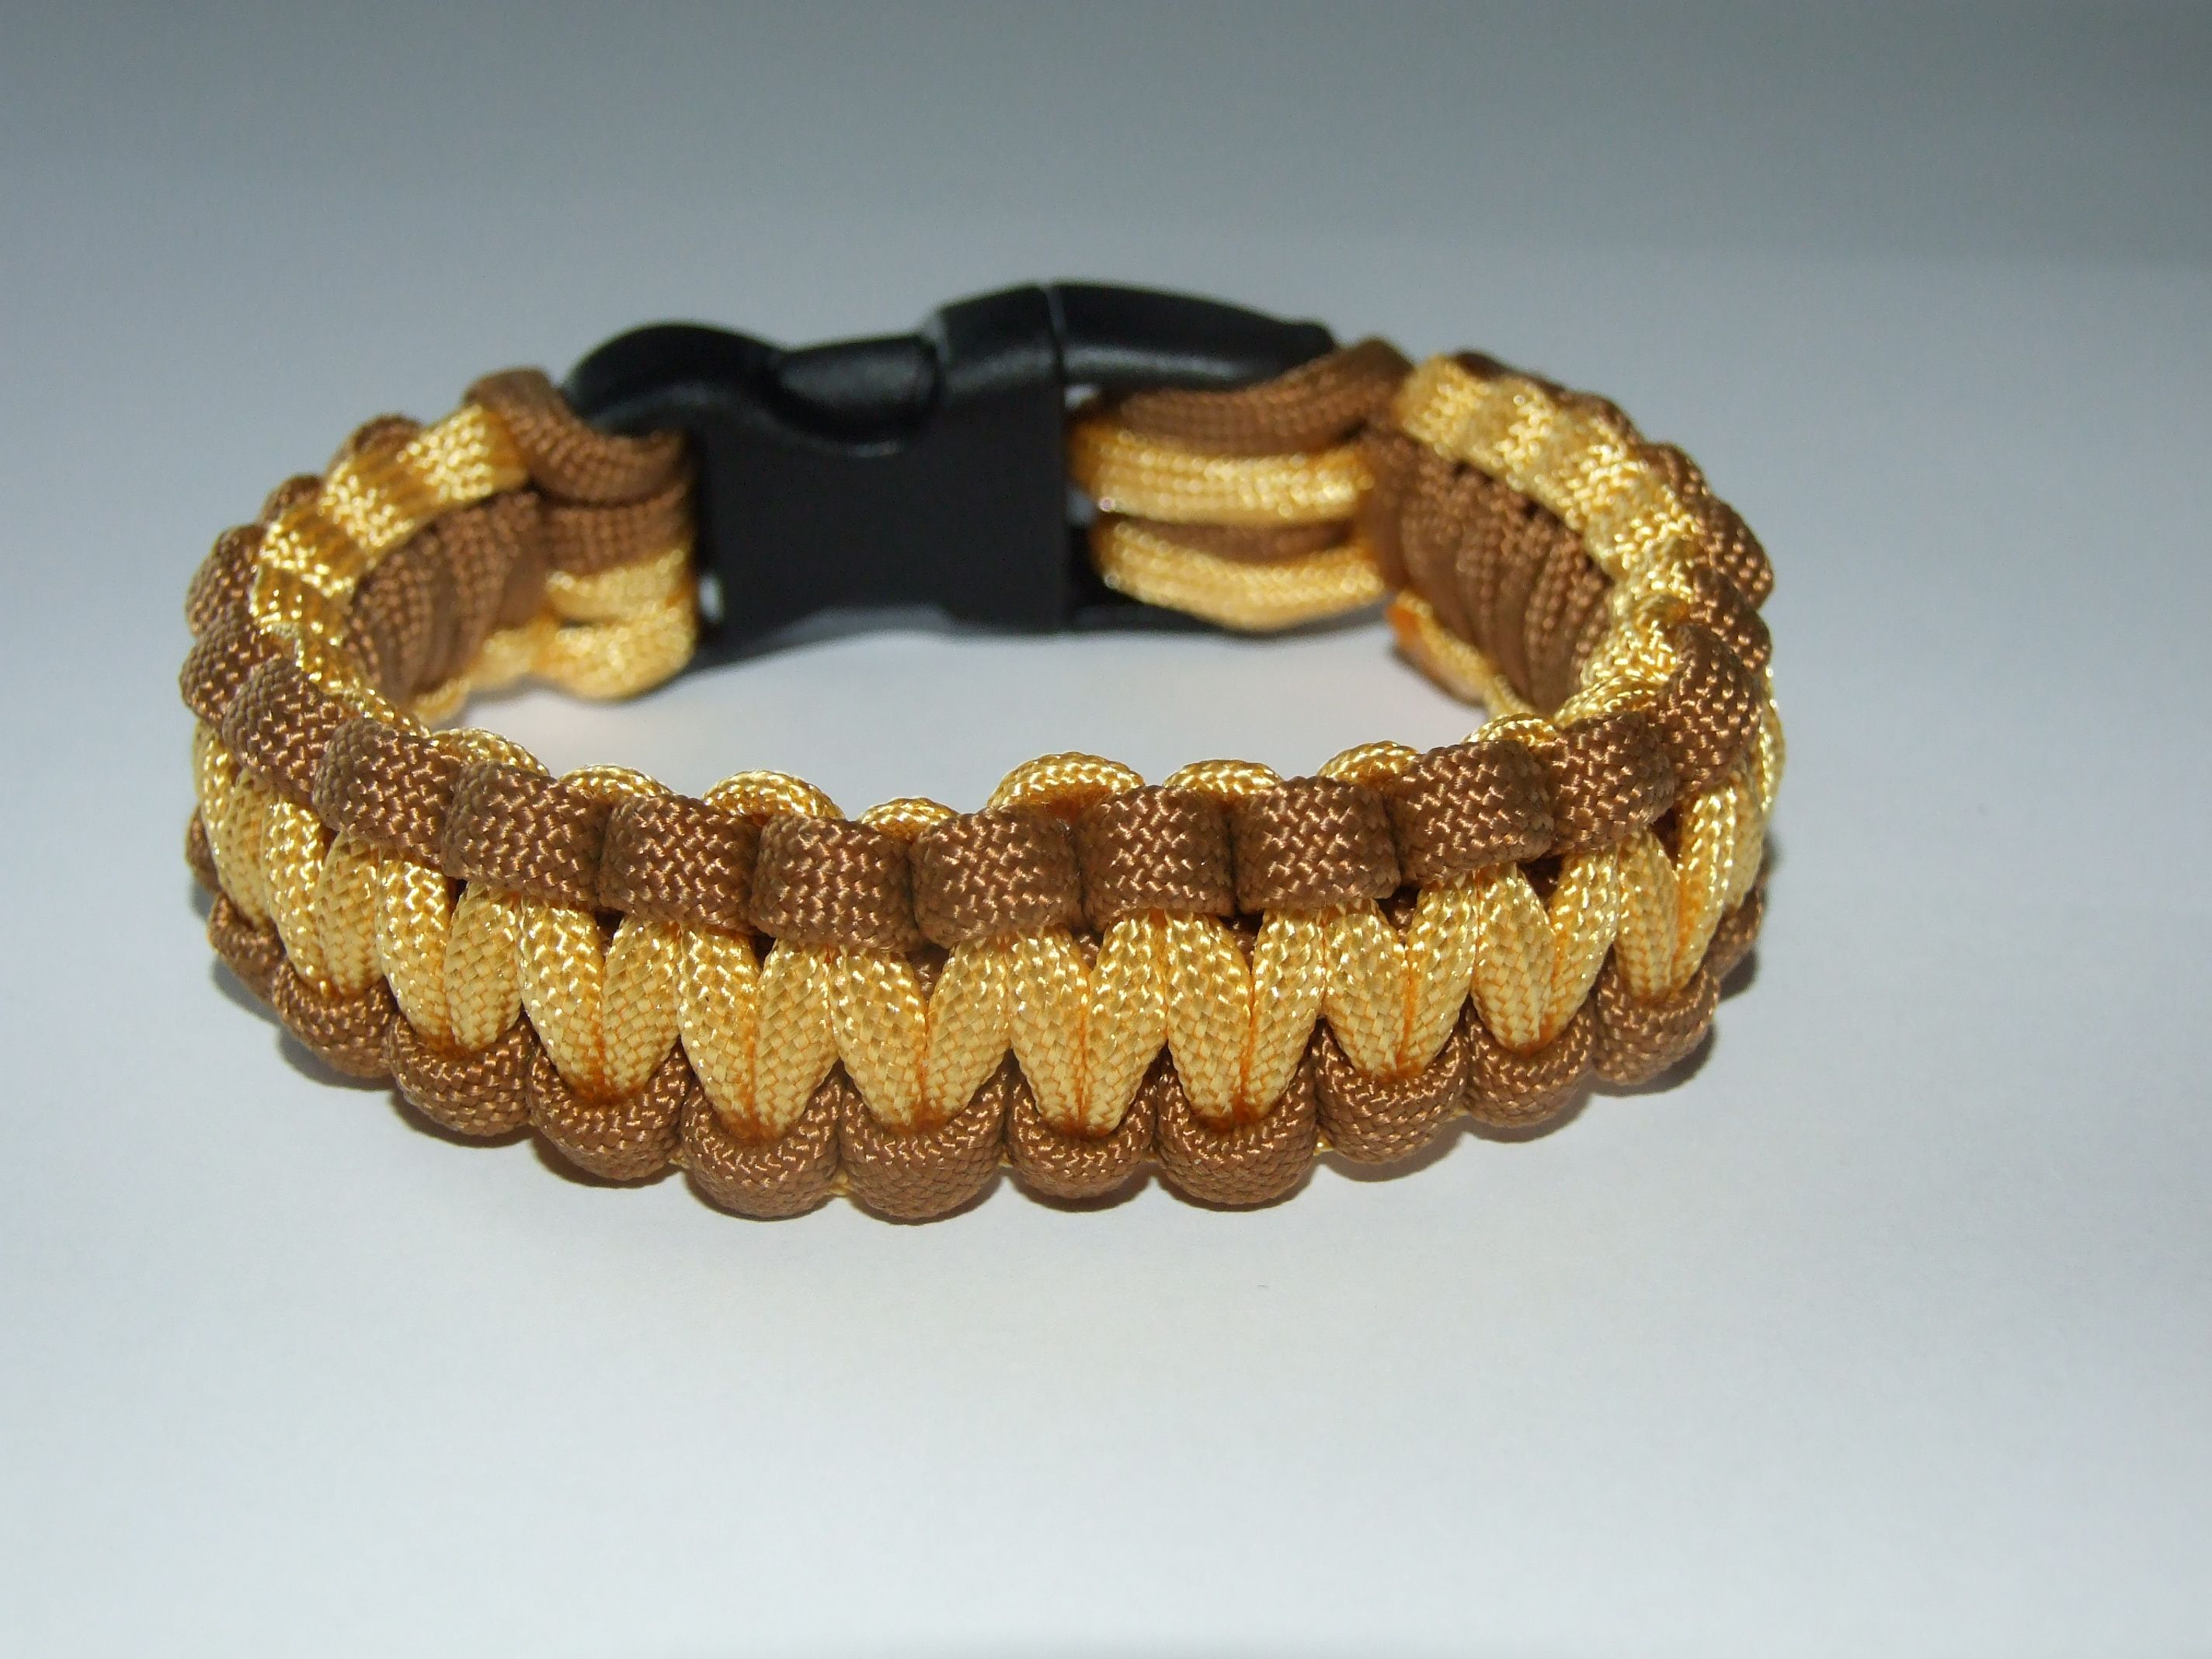 Cobra chocolate and gold paracord bracelet jewellery for sale